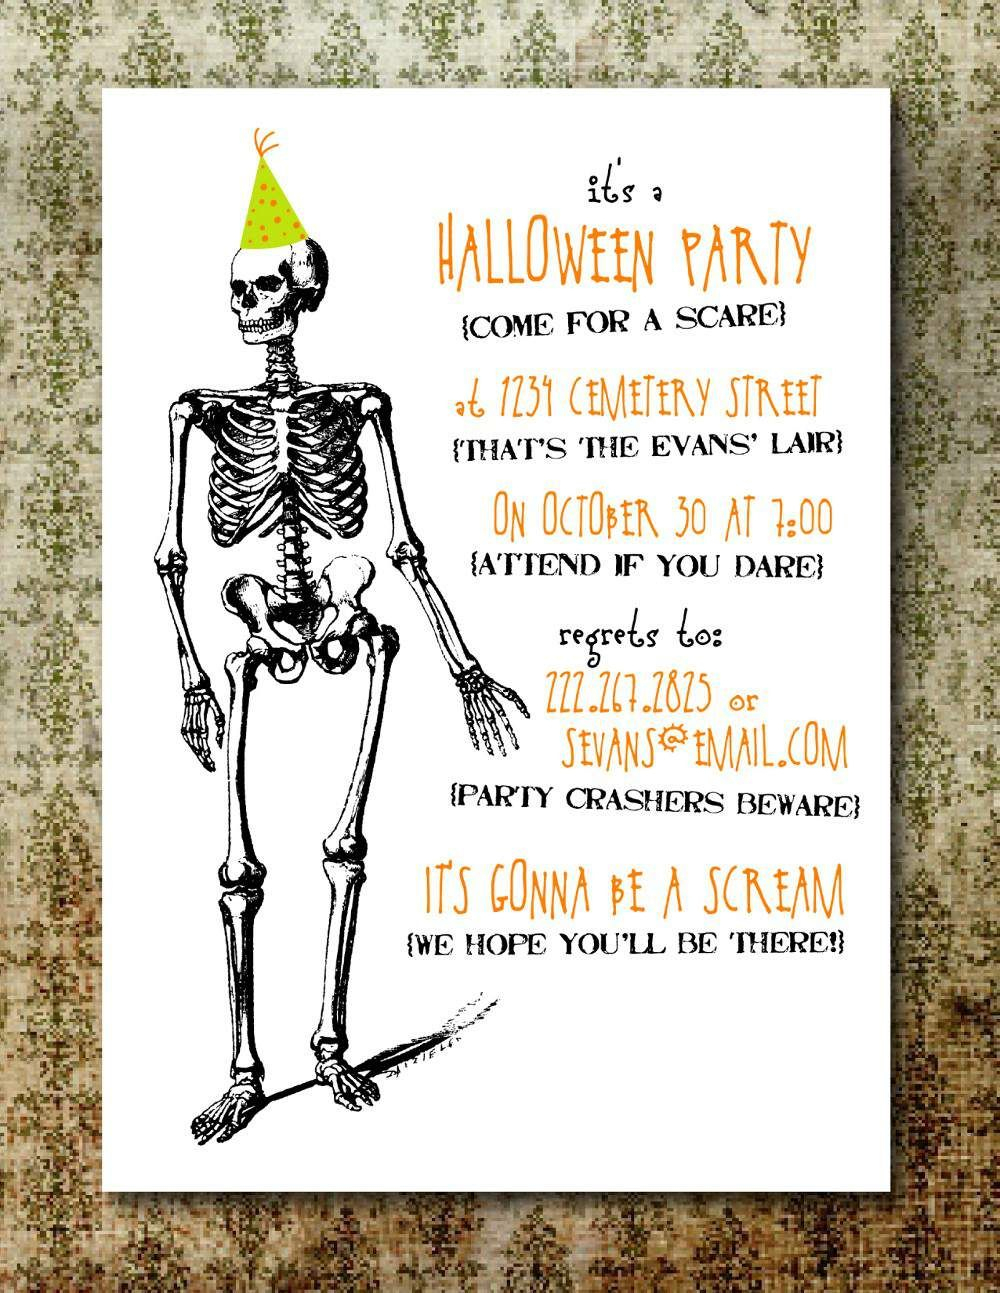 Halloween Party Invitations Free Printable … | Creepy In 2019… - Halloween Invitations Free Printable Black And White